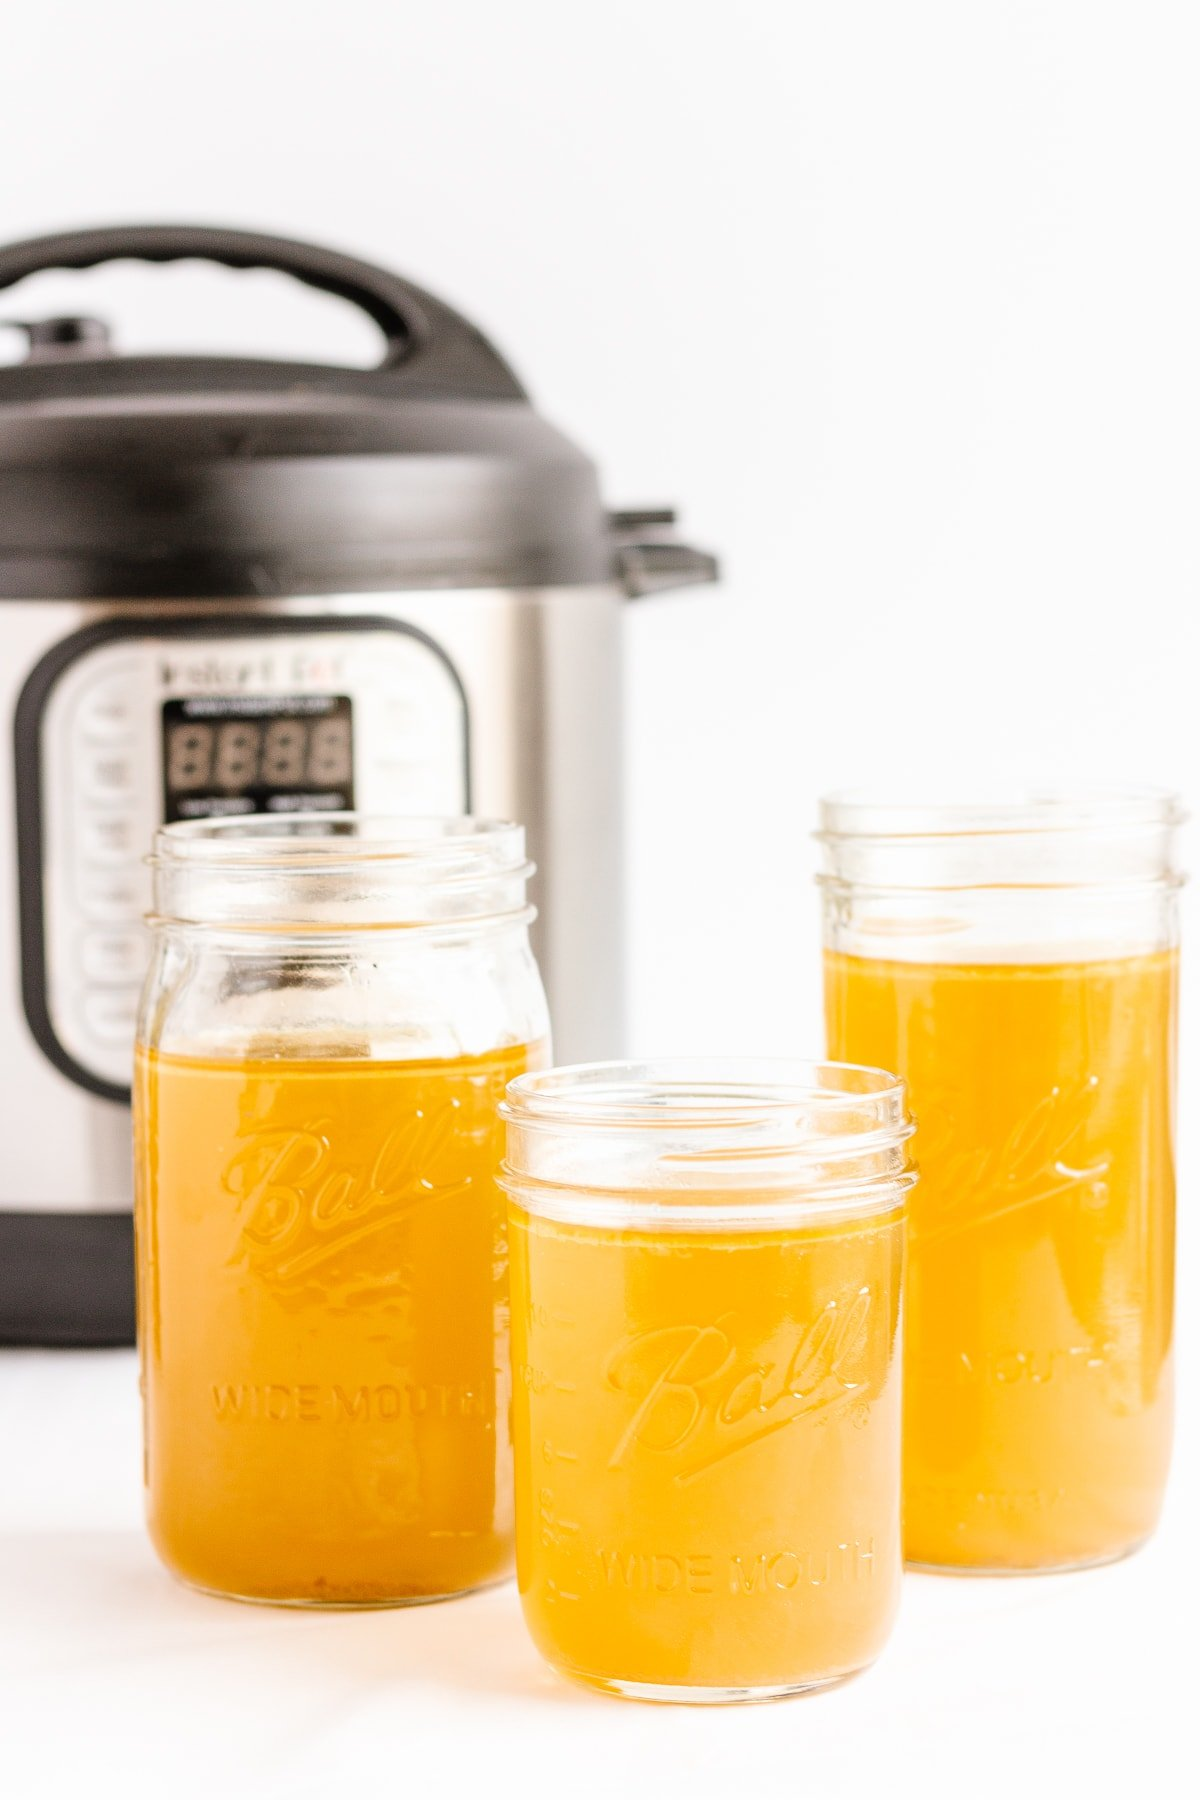 Three jars of chicken bone broth standing in front of an Instant Pot.